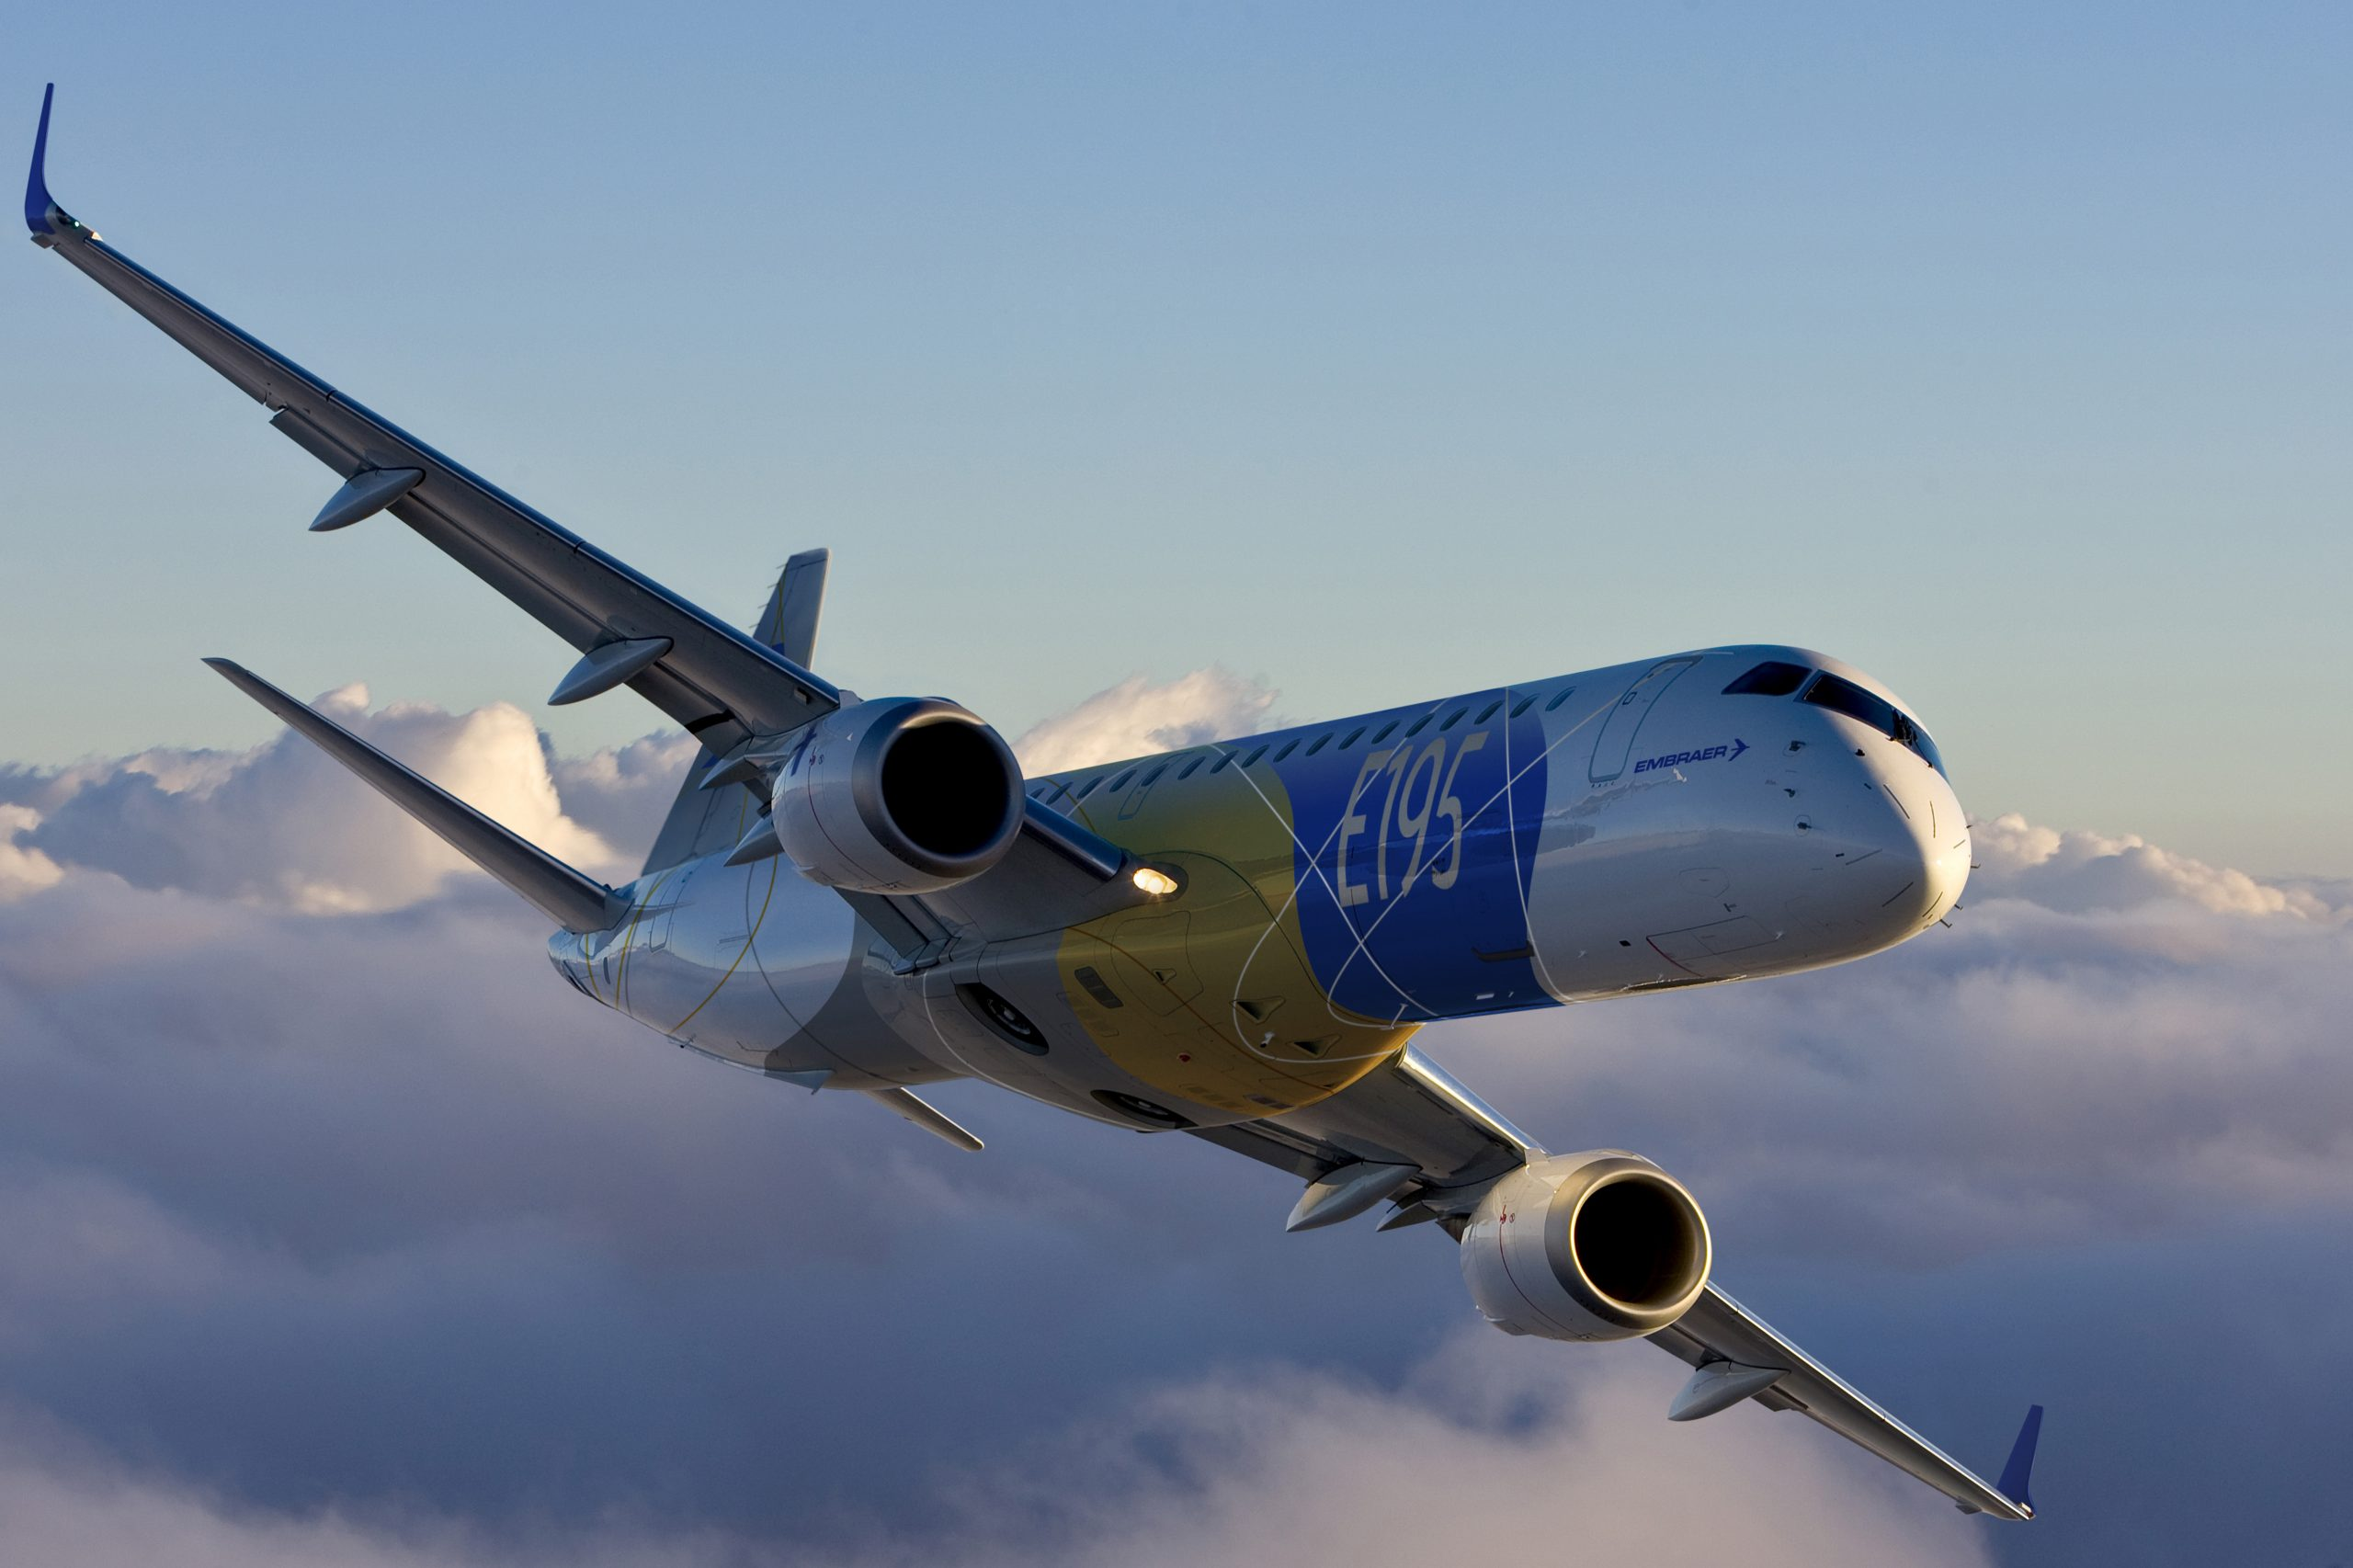 After Failed Acquisition Deal With Boeing, Embraer Restructures And Parts Ways With Key Executives